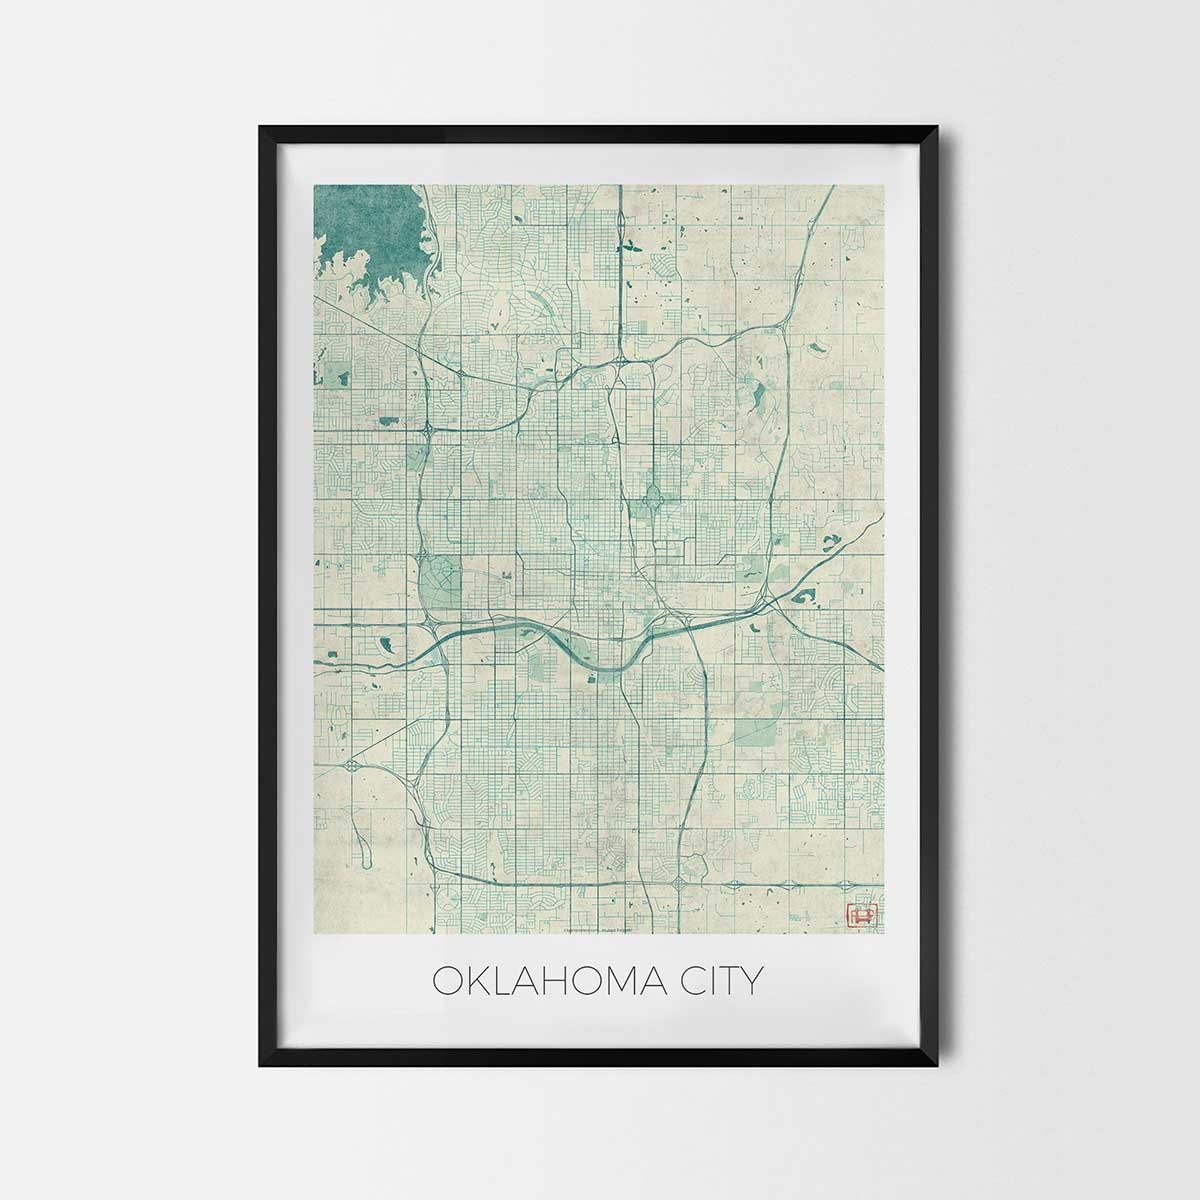 Oklahoma City art posters - City Art Map Posters and Prints on